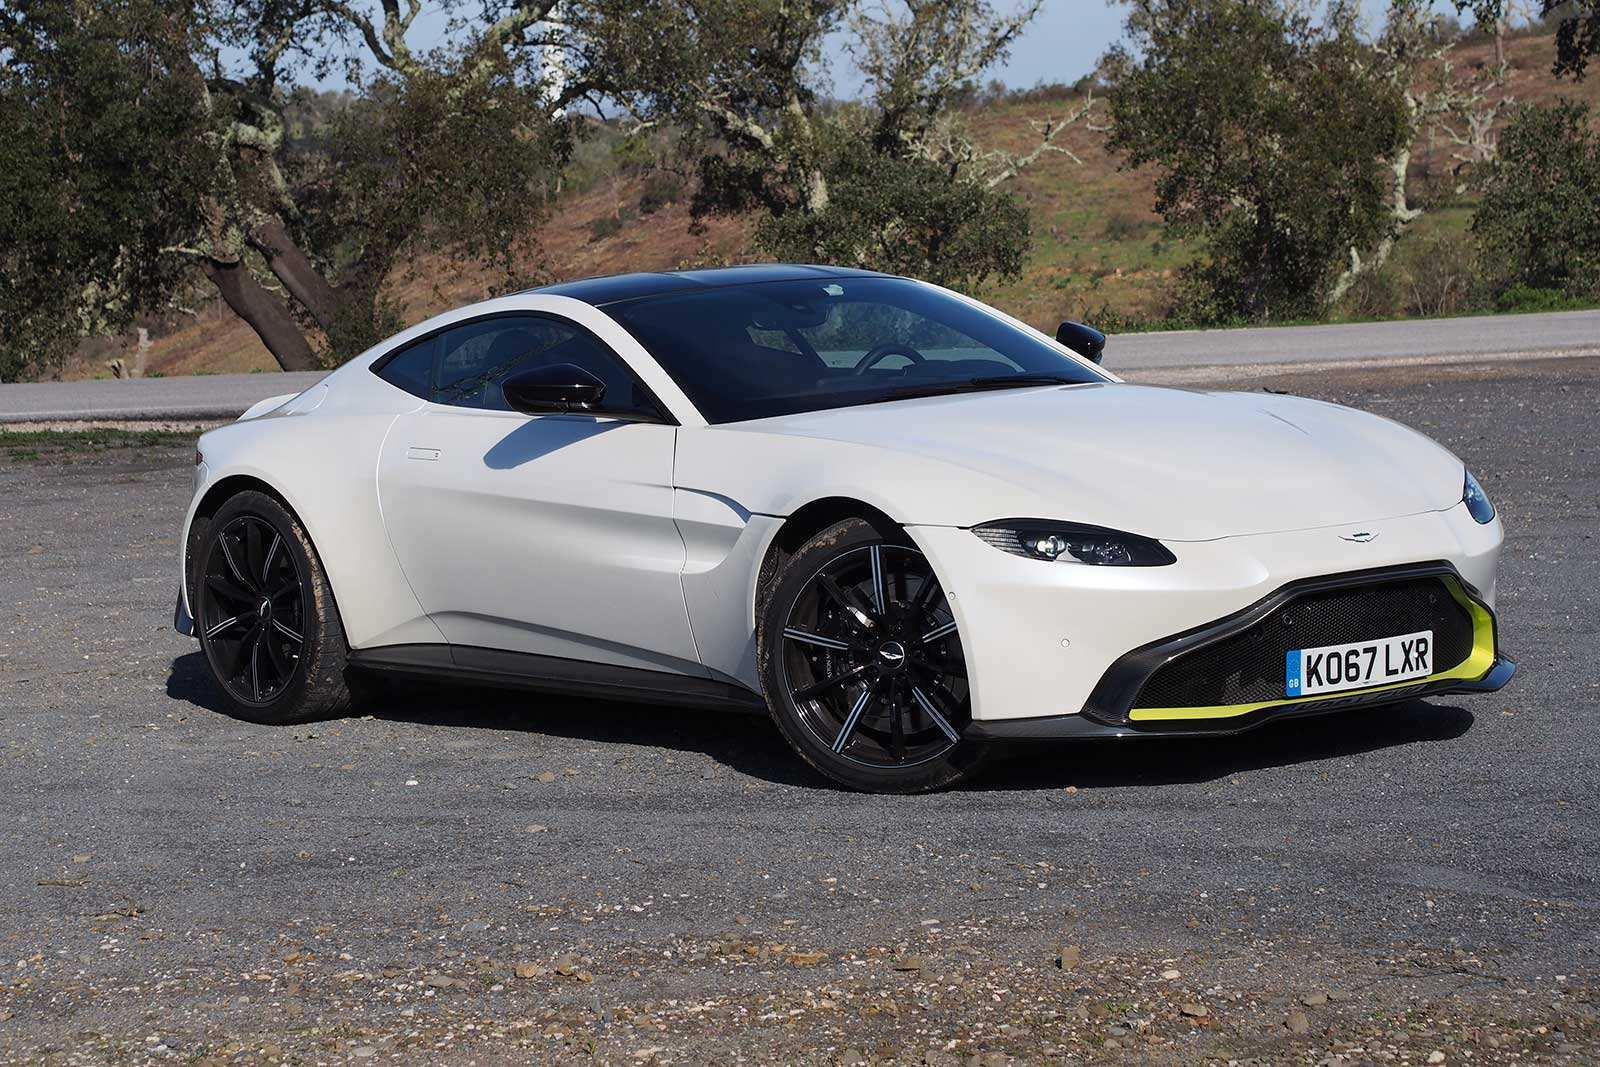 53 New 2019 Aston Vantage First Drive for 2019 Aston Vantage